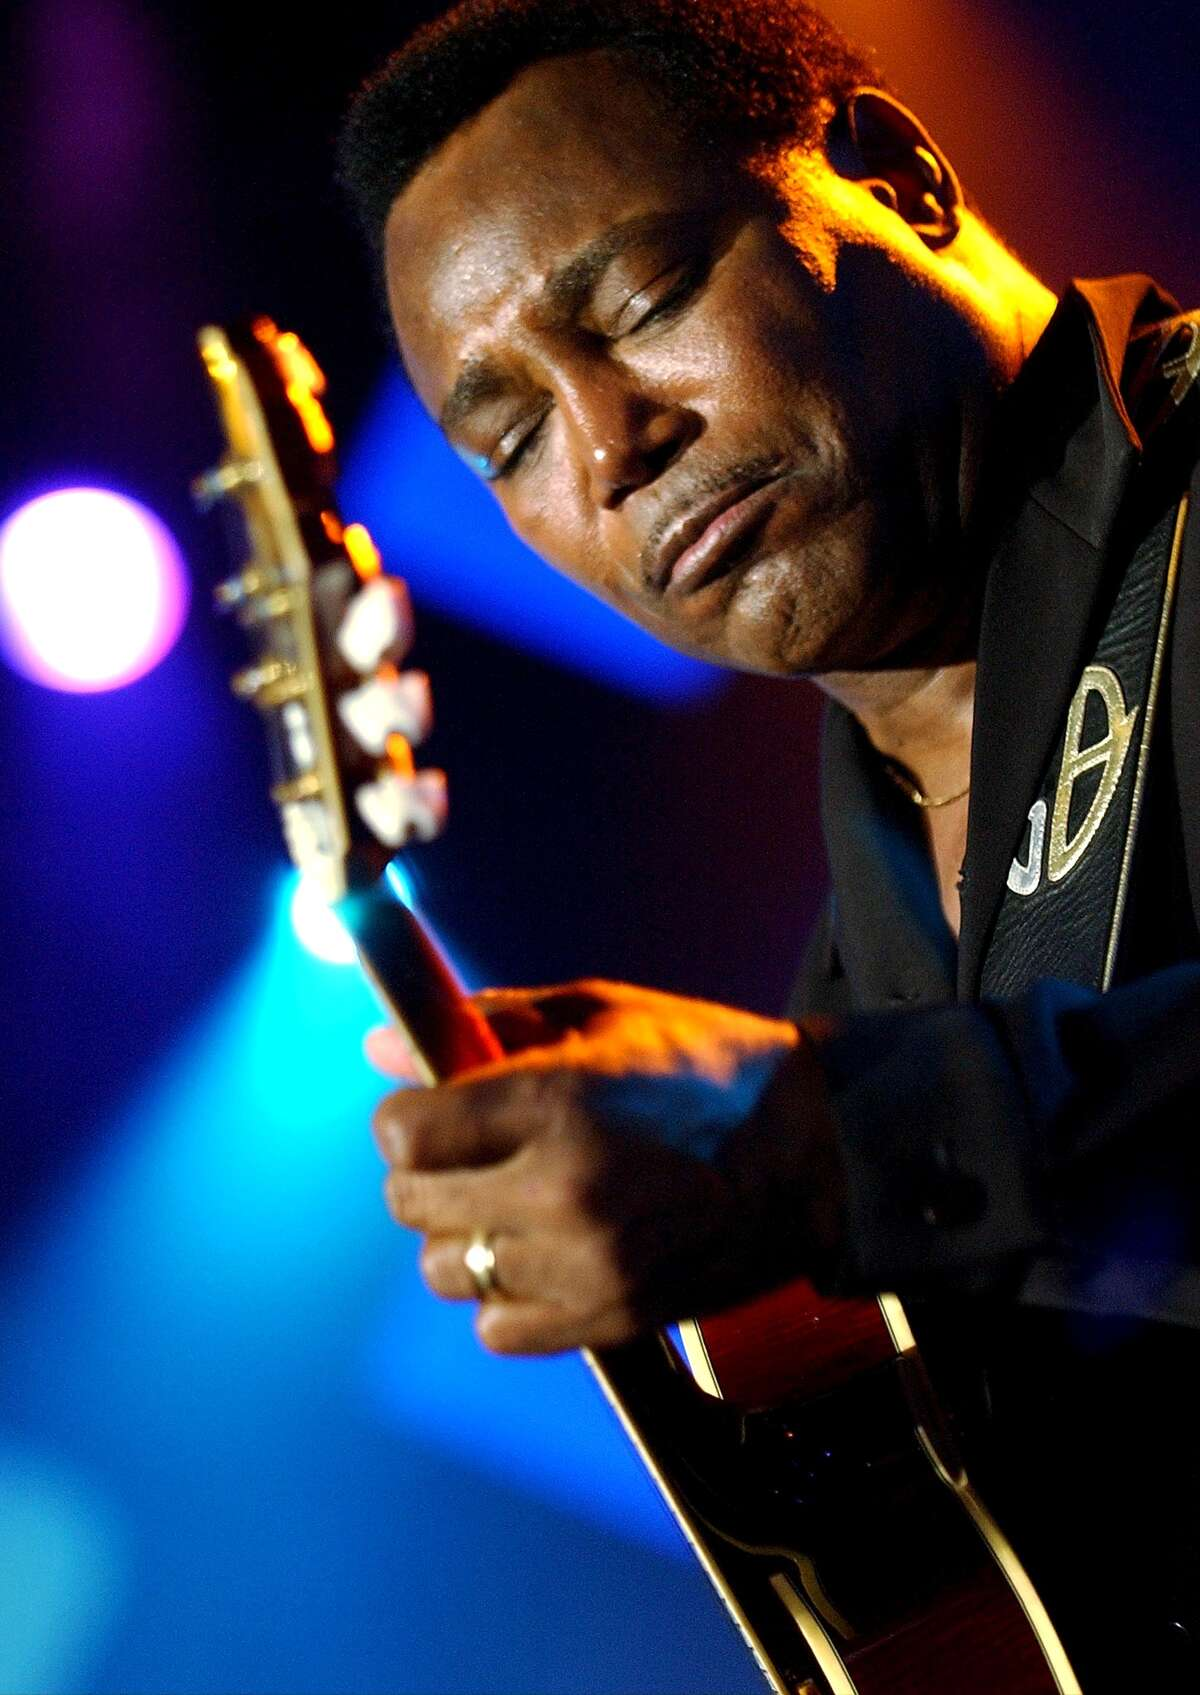 July 20 - George Benson George Benson brings a little jazz back to Wednesday, but he's also know for pop, R&B and scat.